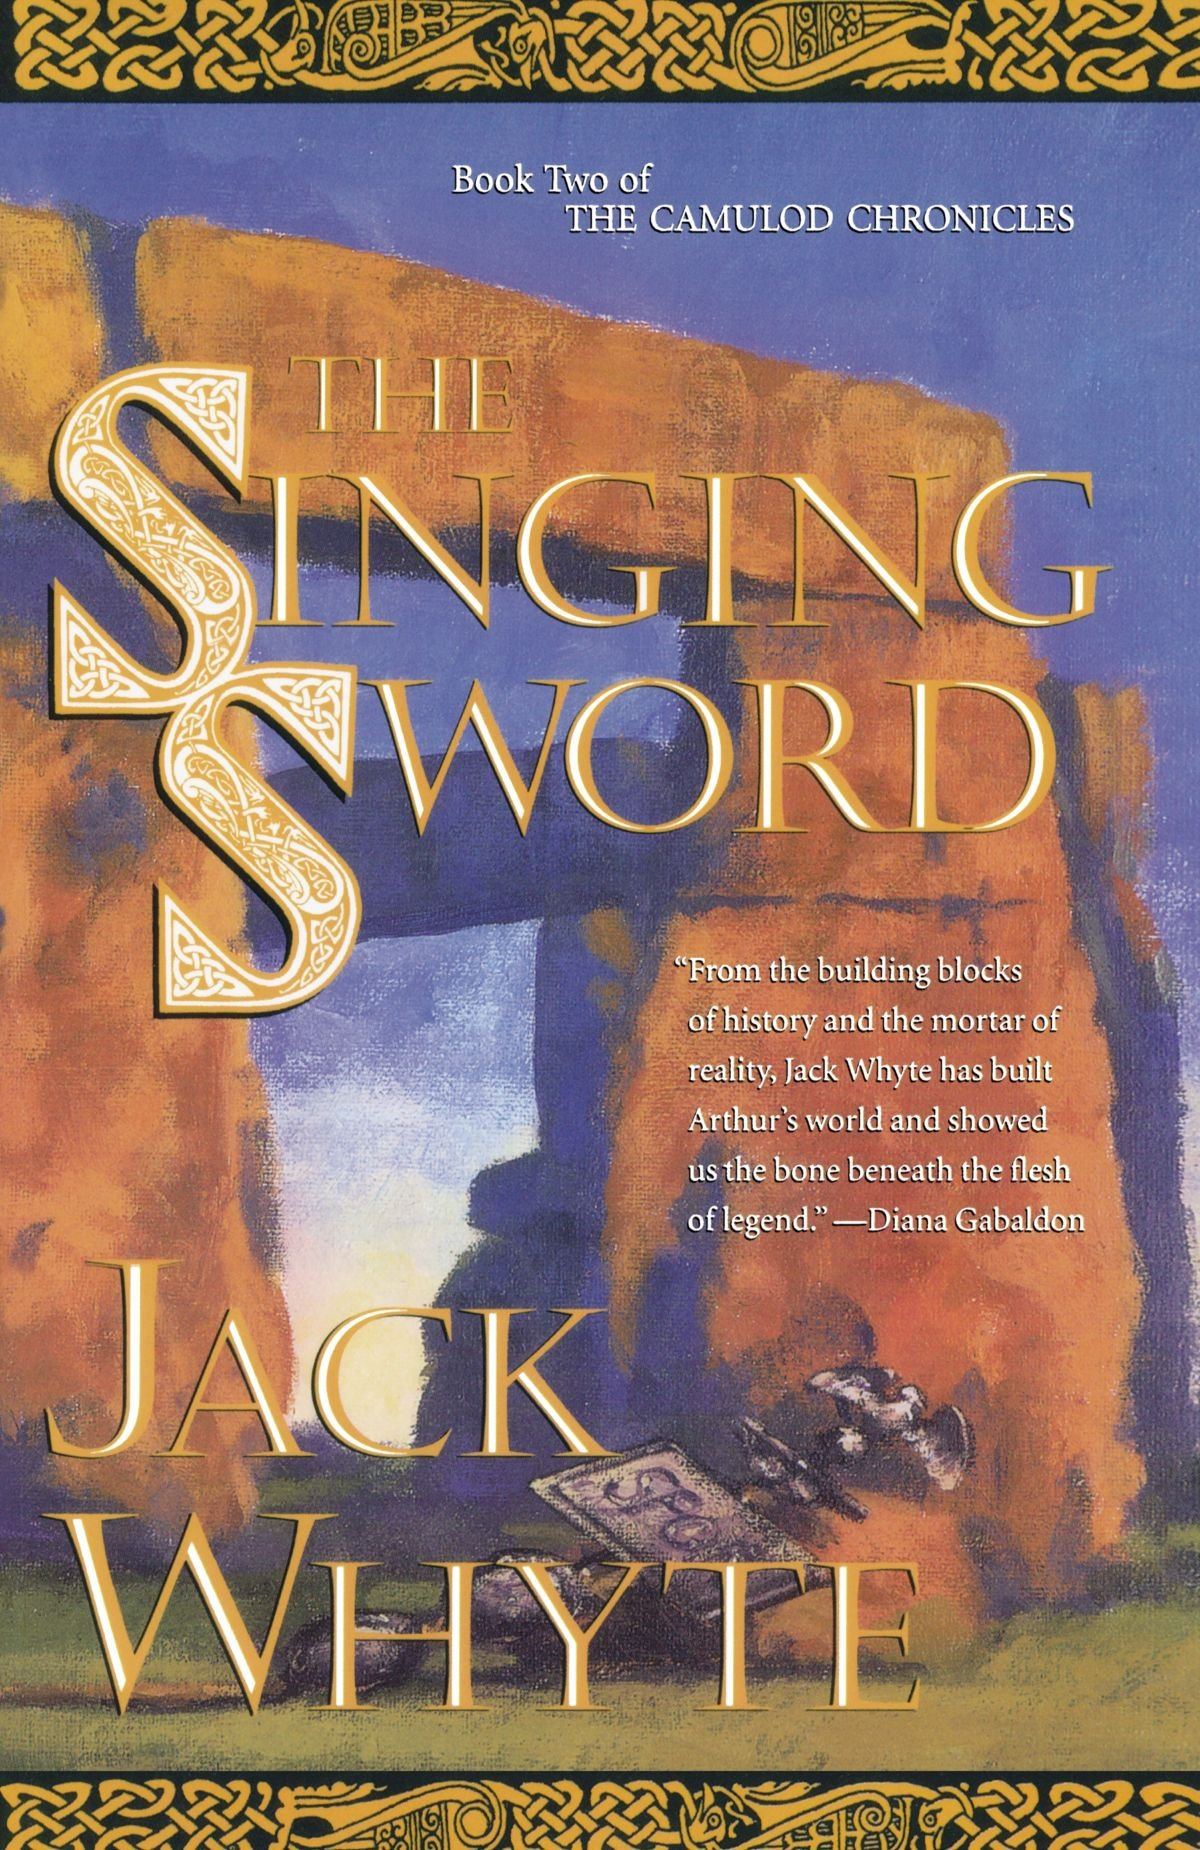 Amazon: The Singing Sword (the Camulod Chronicles, Book 2)  (9780765304582): Jack Whyte: Books